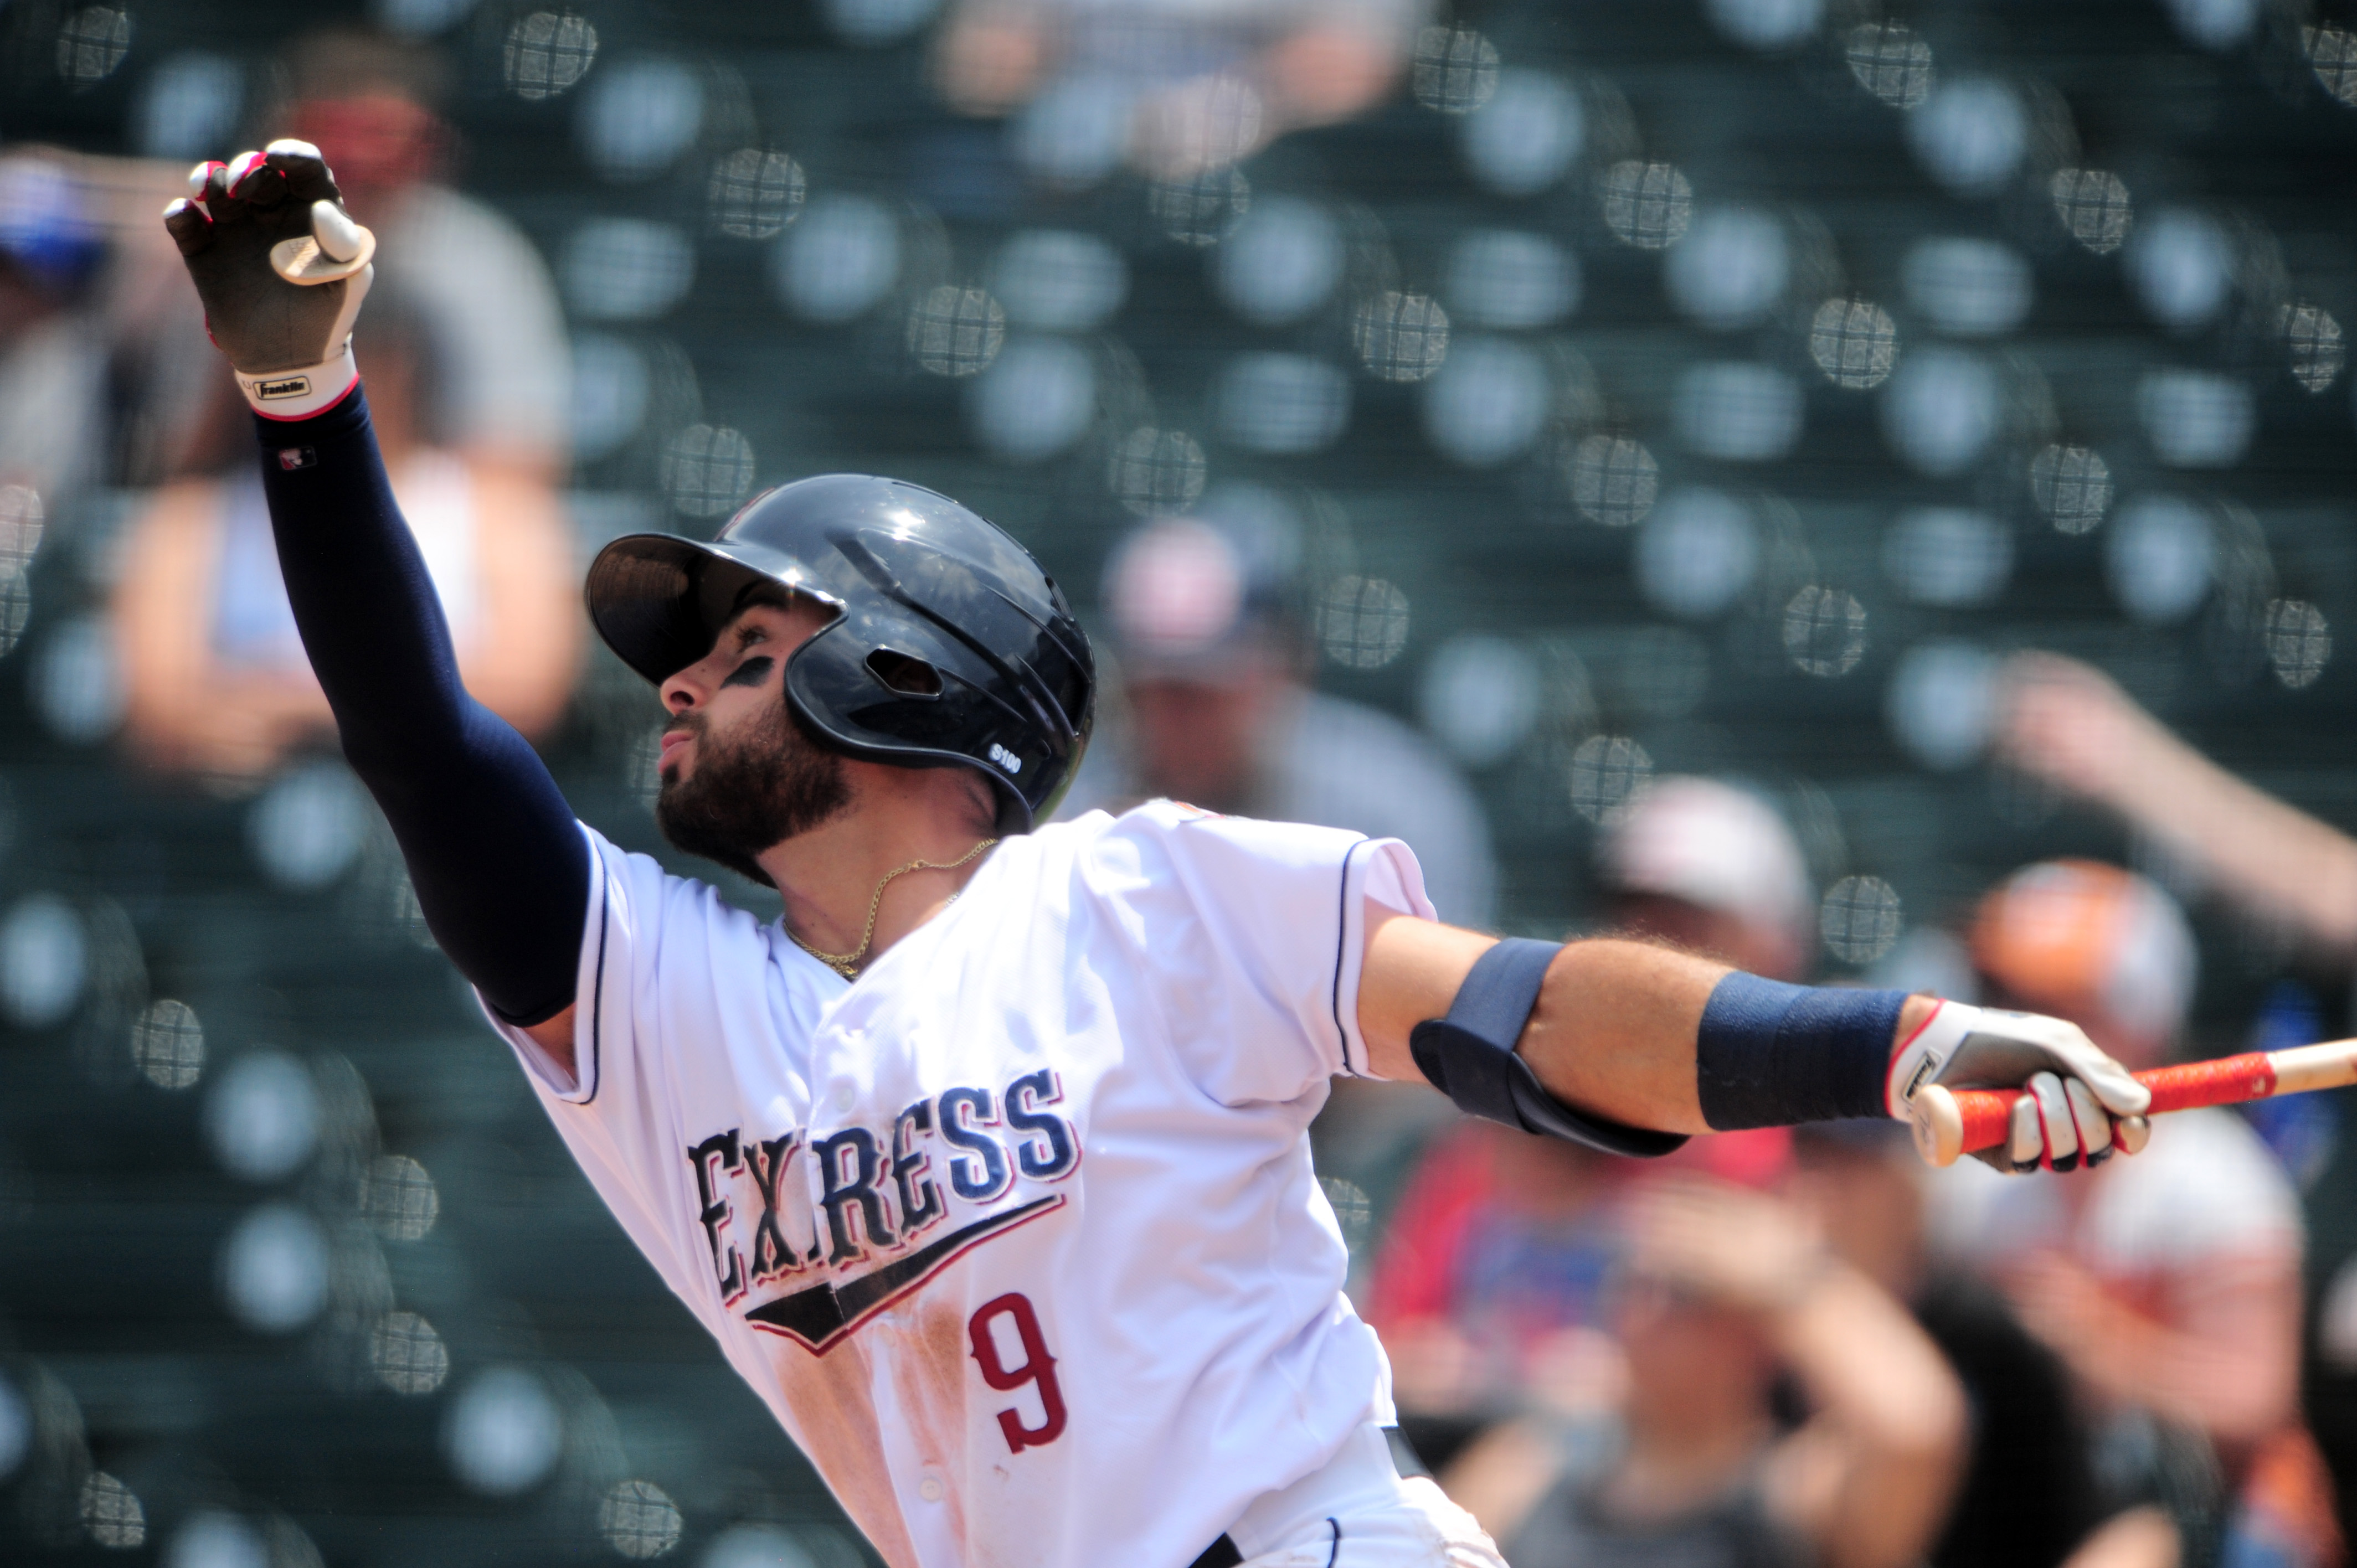 MiLB: MAY 19 Nashville Sounds at Round Rock Express